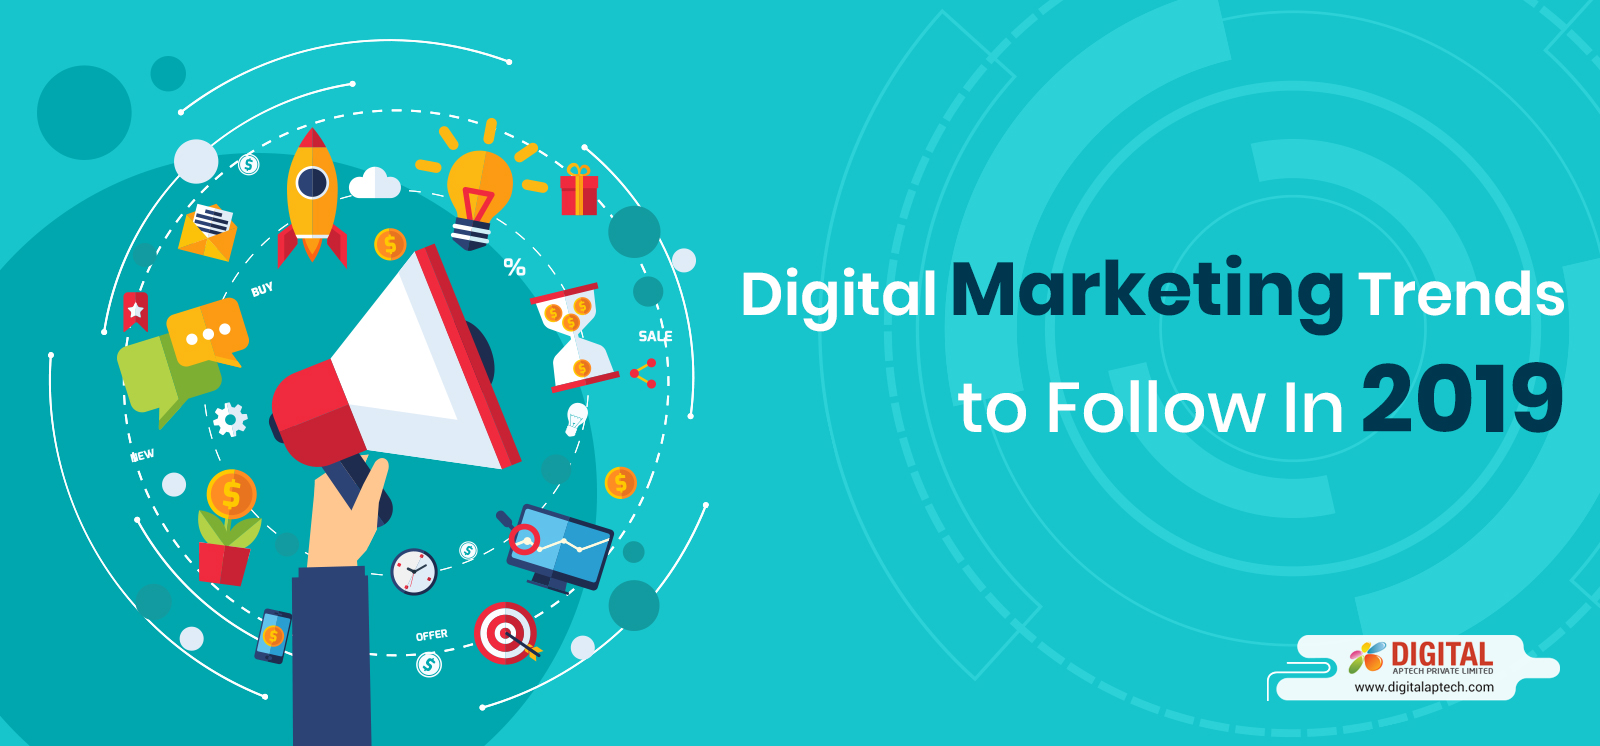 Digital Marketing Trends to Follow in 2019: Top 5